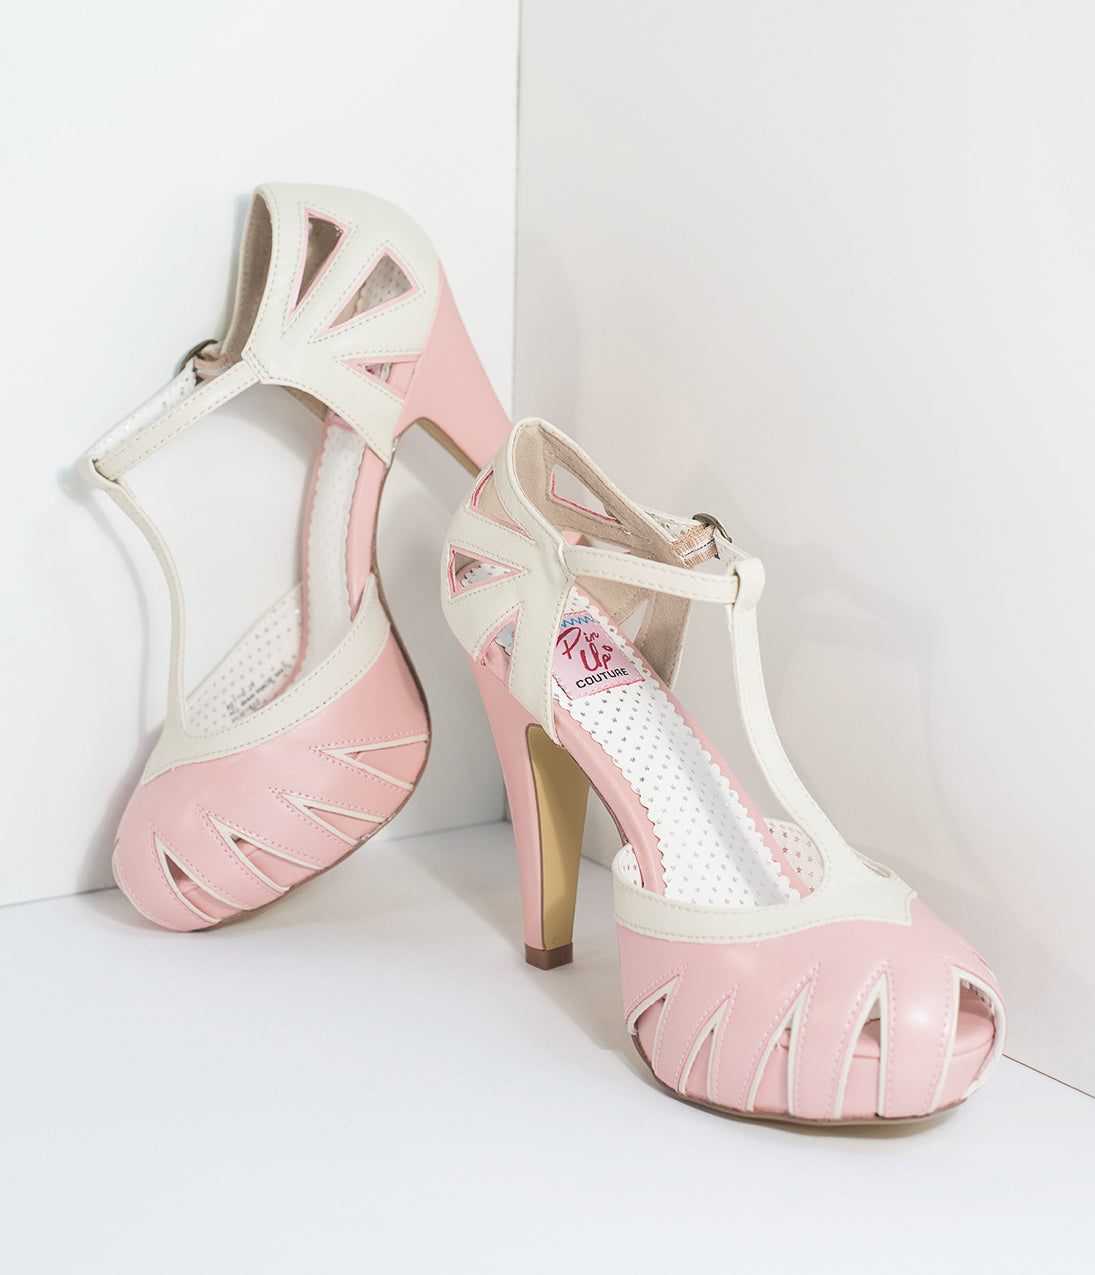 1950s Style Shoes | Heels, Flats, Saddle Shoes Vintage Style Light Pink  Cream T-Strap Platform Cutout Heels $68.00 AT vintagedancer.com